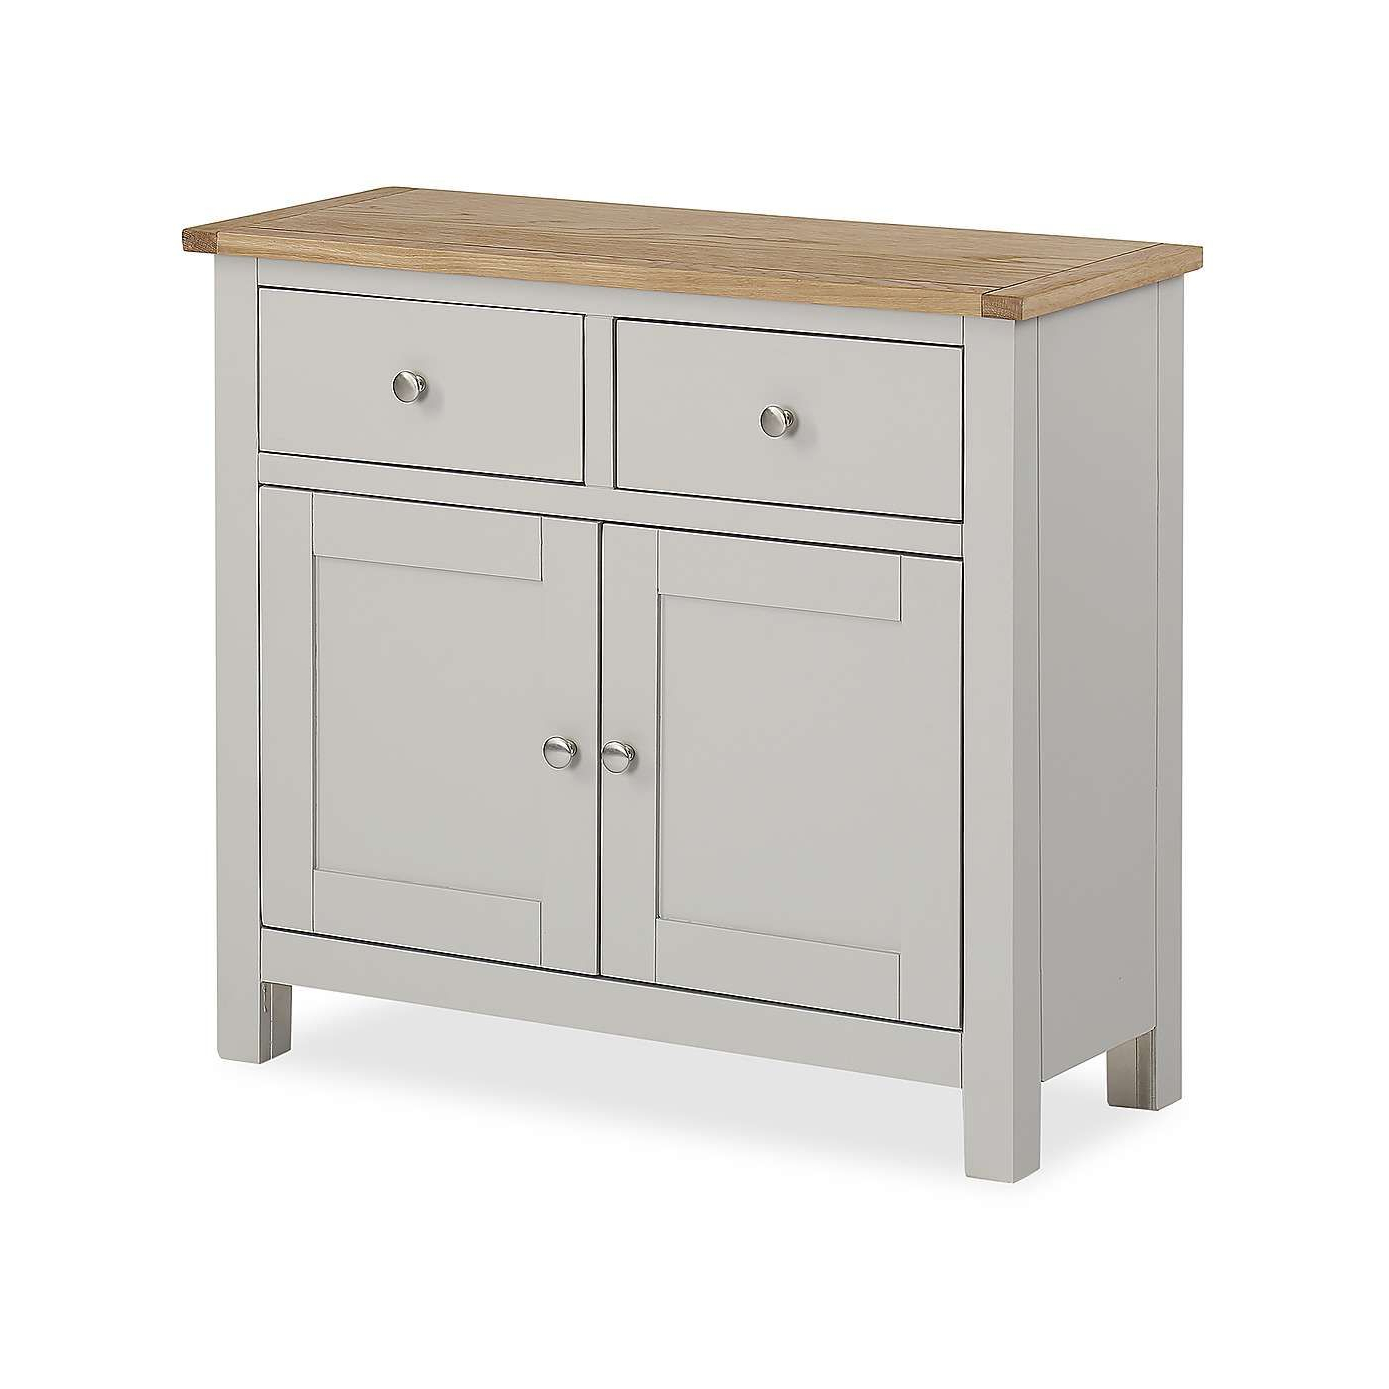 Bromley Grey Sideboard   Sideboard Grey, Grey Small Throughout Bromley Oak Corner Tv Stands (View 17 of 20)